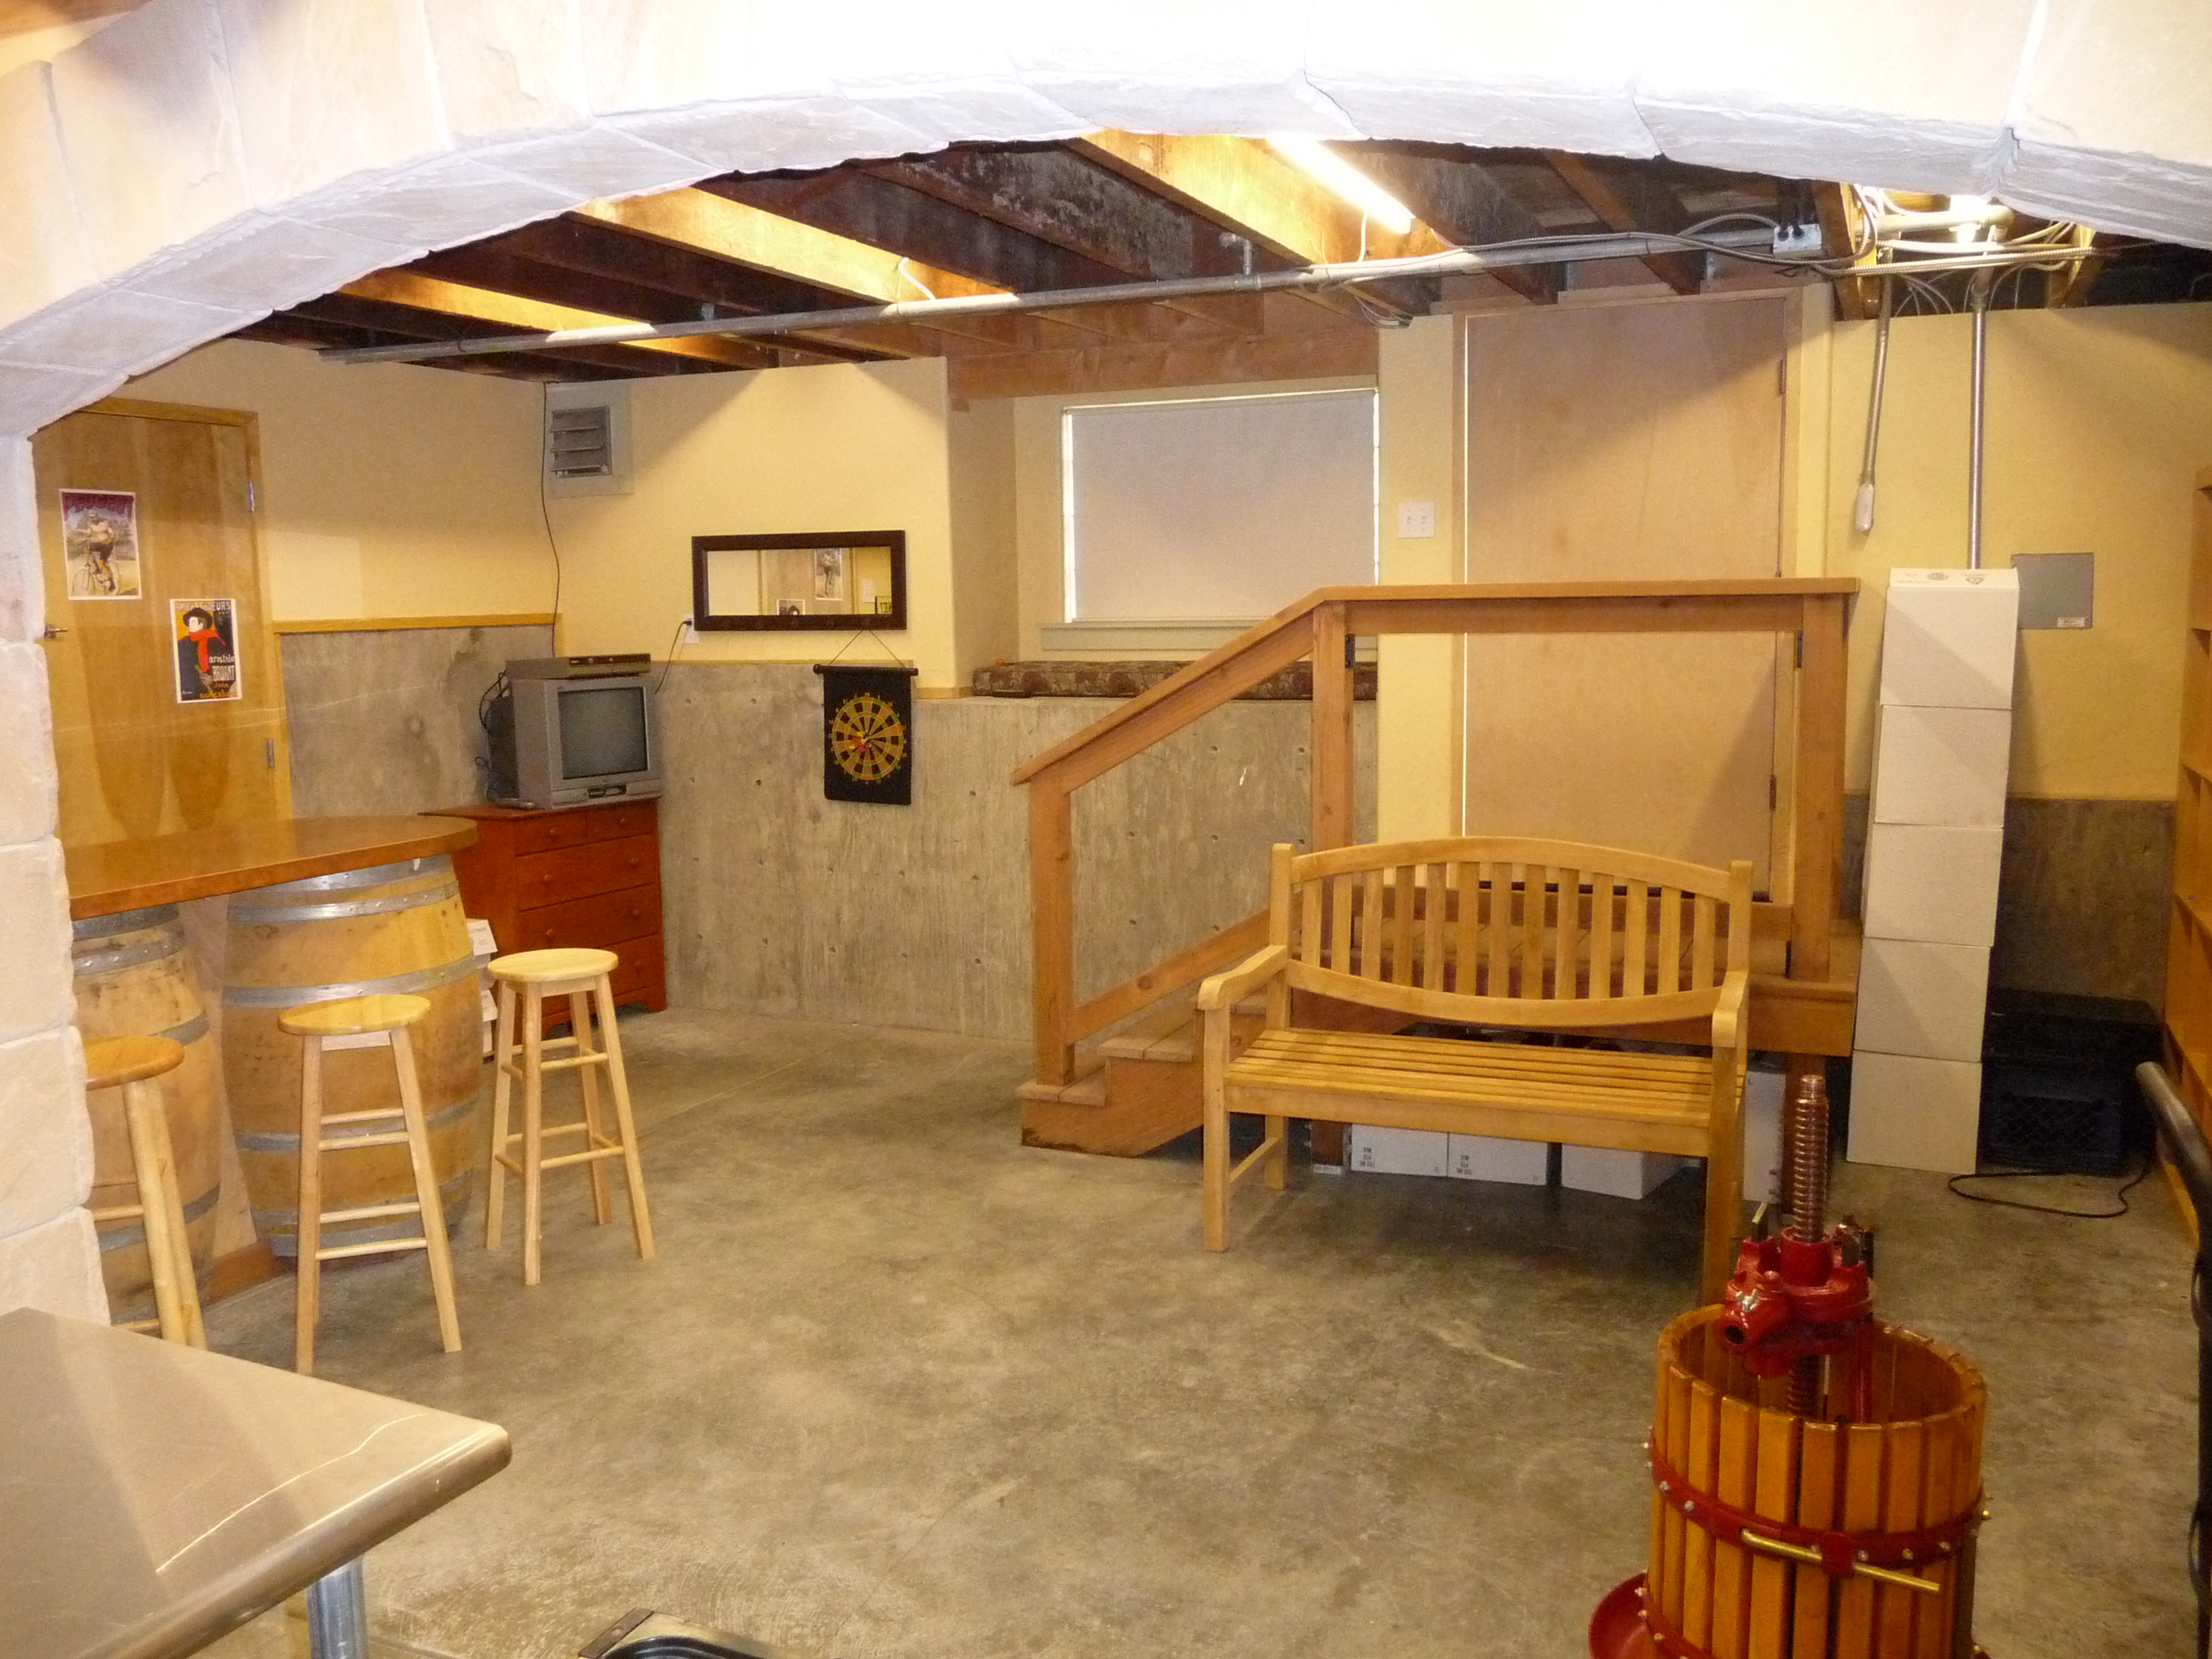 Home wine cellars stomping girl blog for What is a crawl space basement